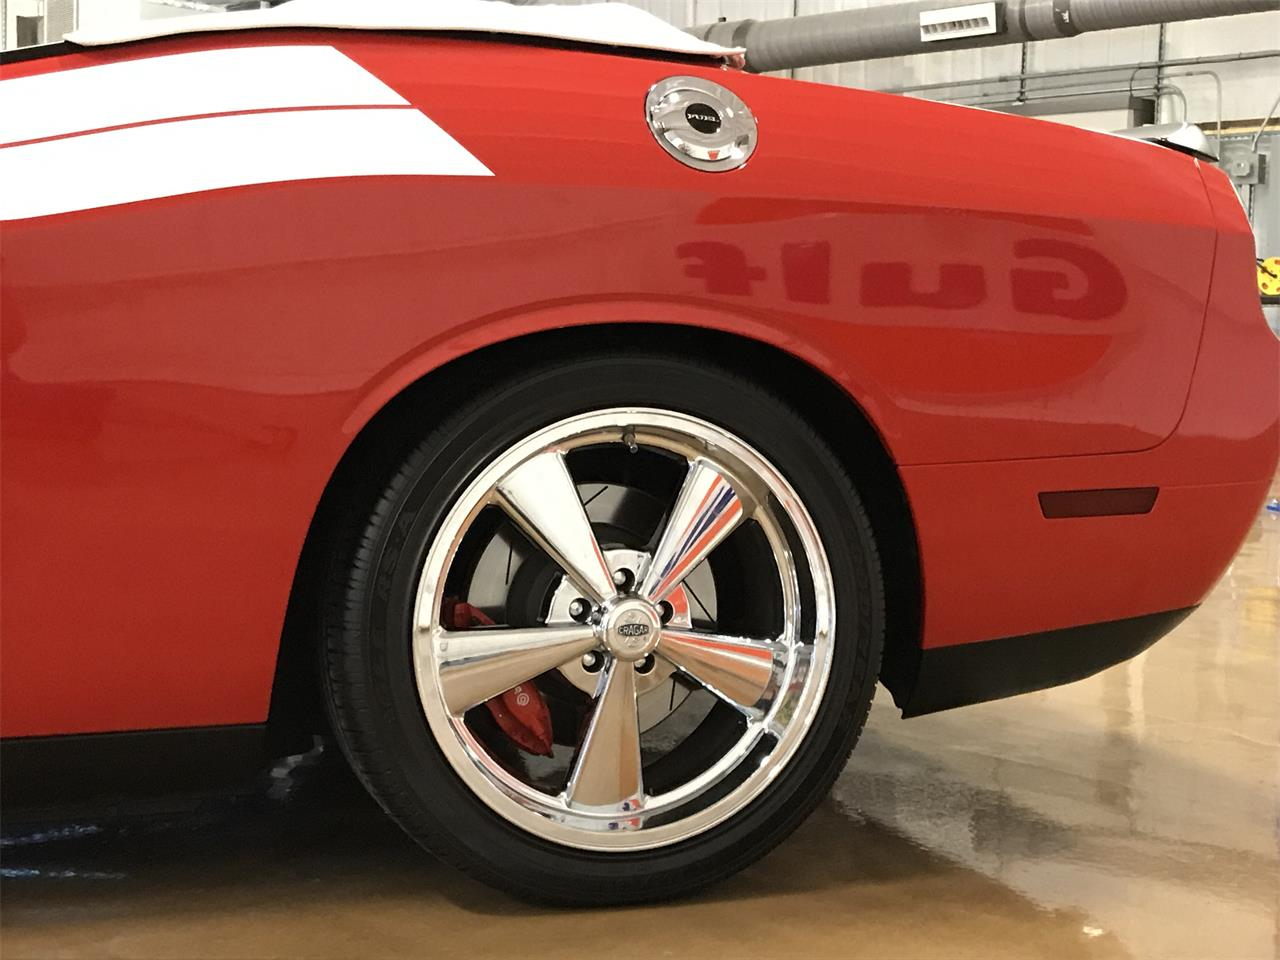 2010 Dodge Challenger (CC-1322977) for sale in Granbury, Texas